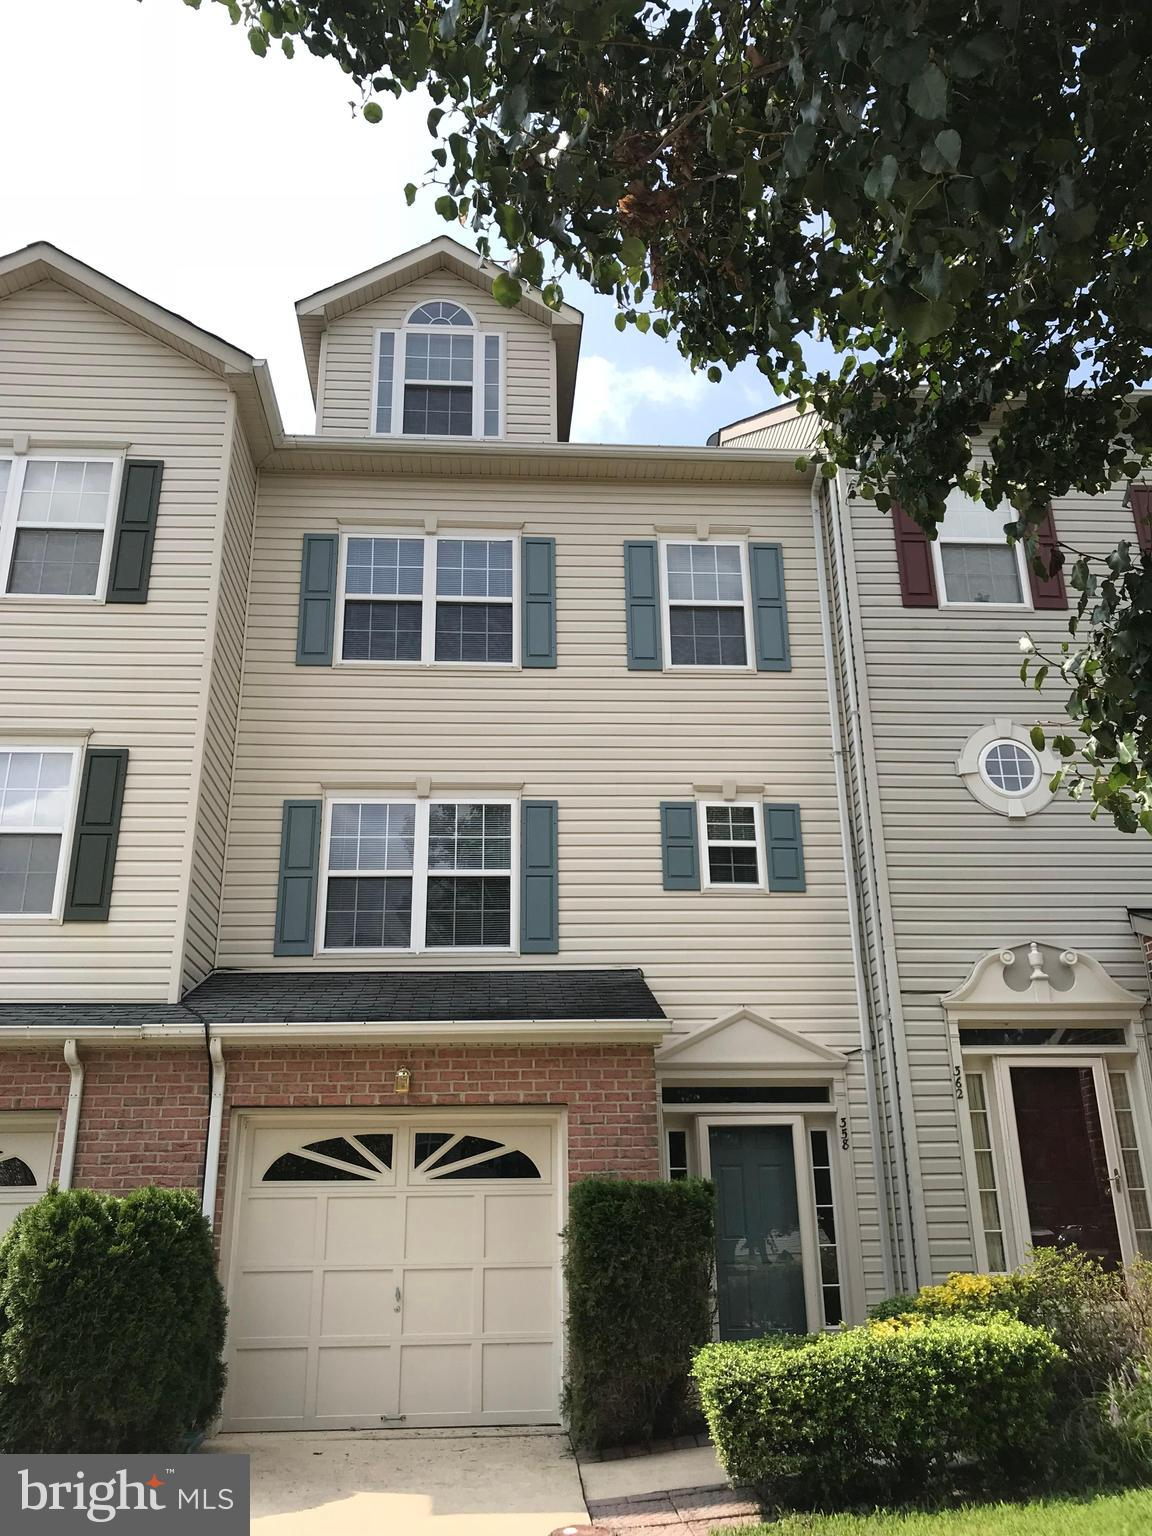 IMMACULATE, well cared for and shows GREAT!  Open floor plan, gourmet kitchen, island, large deck ov